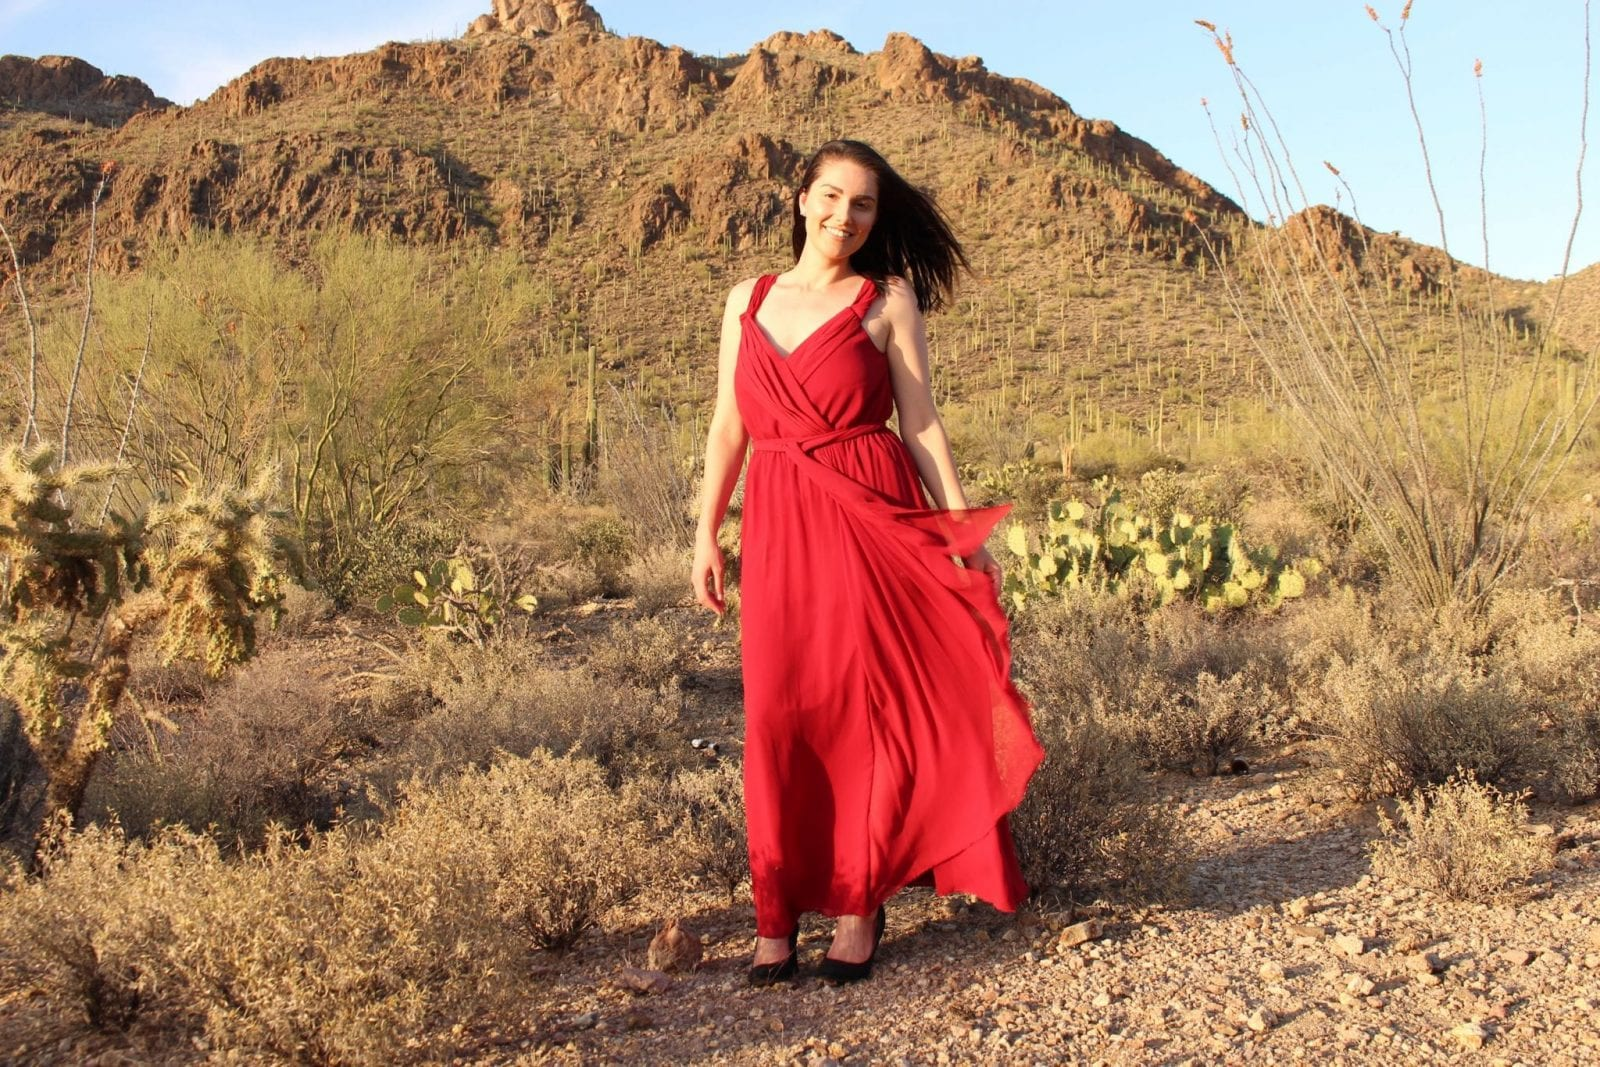 This is an image of Adaleta Avdic wearing a gorgeous long slitted red bridesmaid dress in the desert.